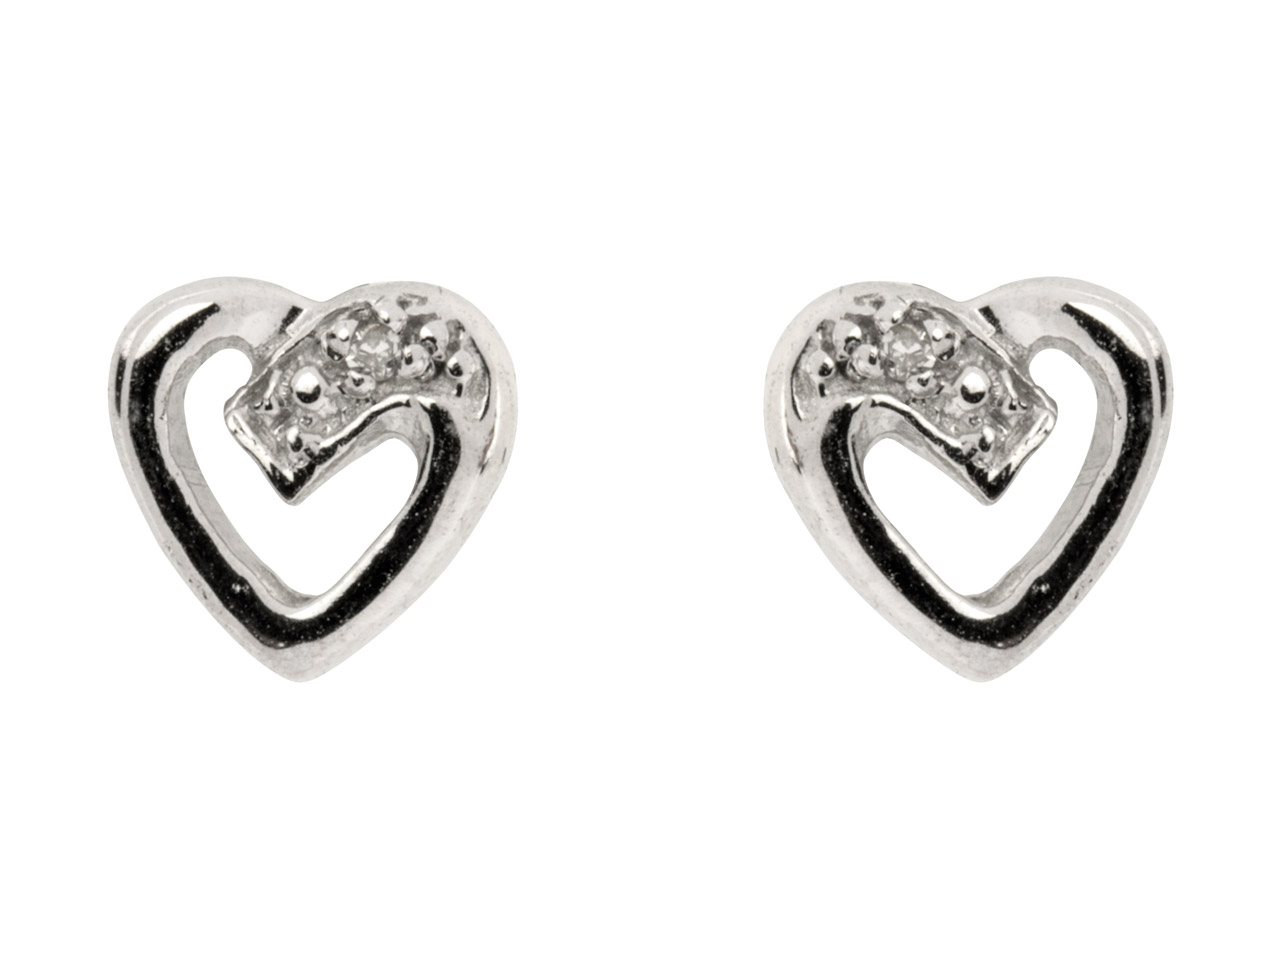 Sterling Silver Heart Outline Stud Earrings With Diamond